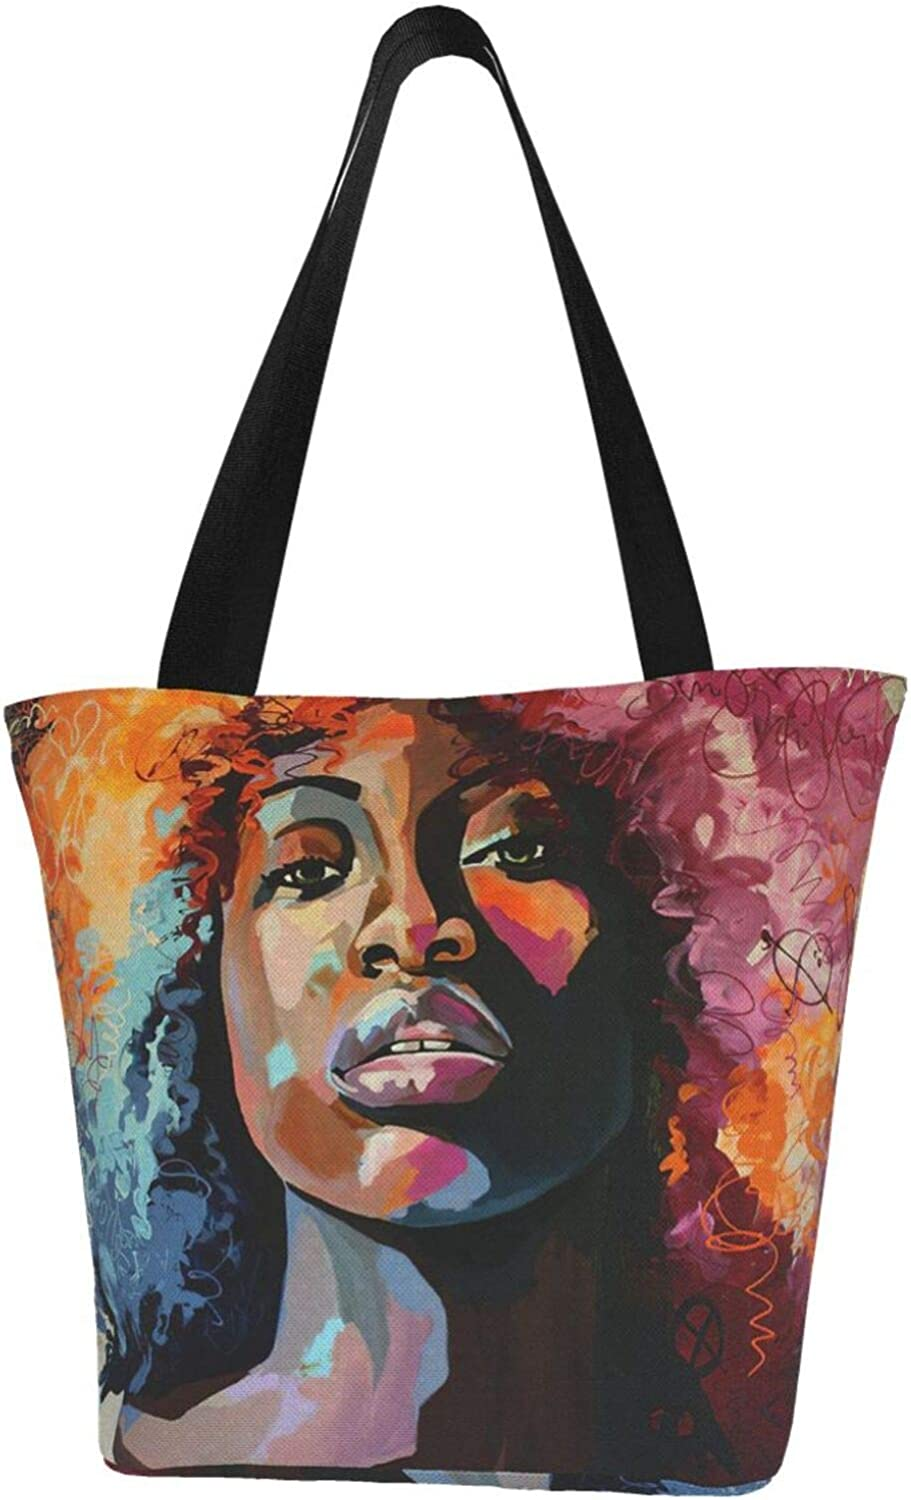 African Woman With Coloured Hair Afro Themed Printed Women Canvas Handbag Zipper Shoulder Bag Work Booksbag Tote Purse Leisure Hobo Bag For Shopping